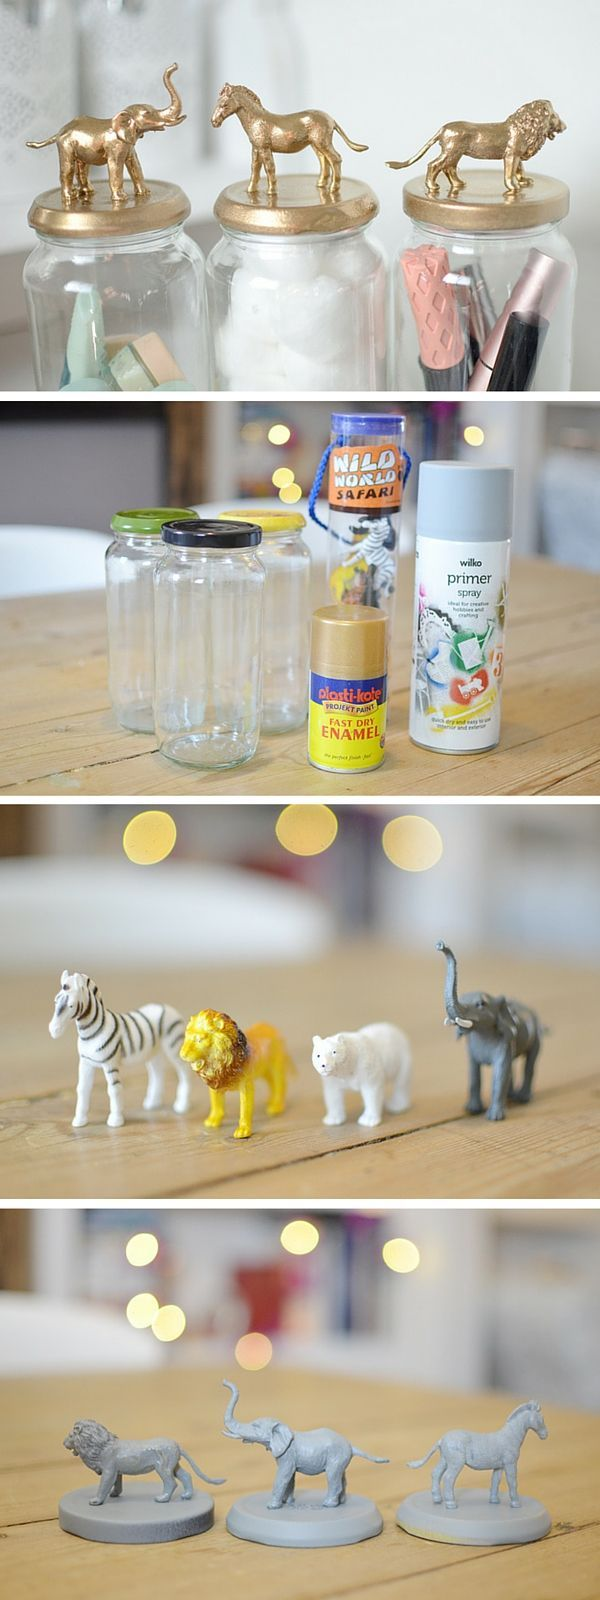 Attractive 10 Brilliant DIY Home Decor Ideas, Check Out The Tutorial: #DIY  Gold